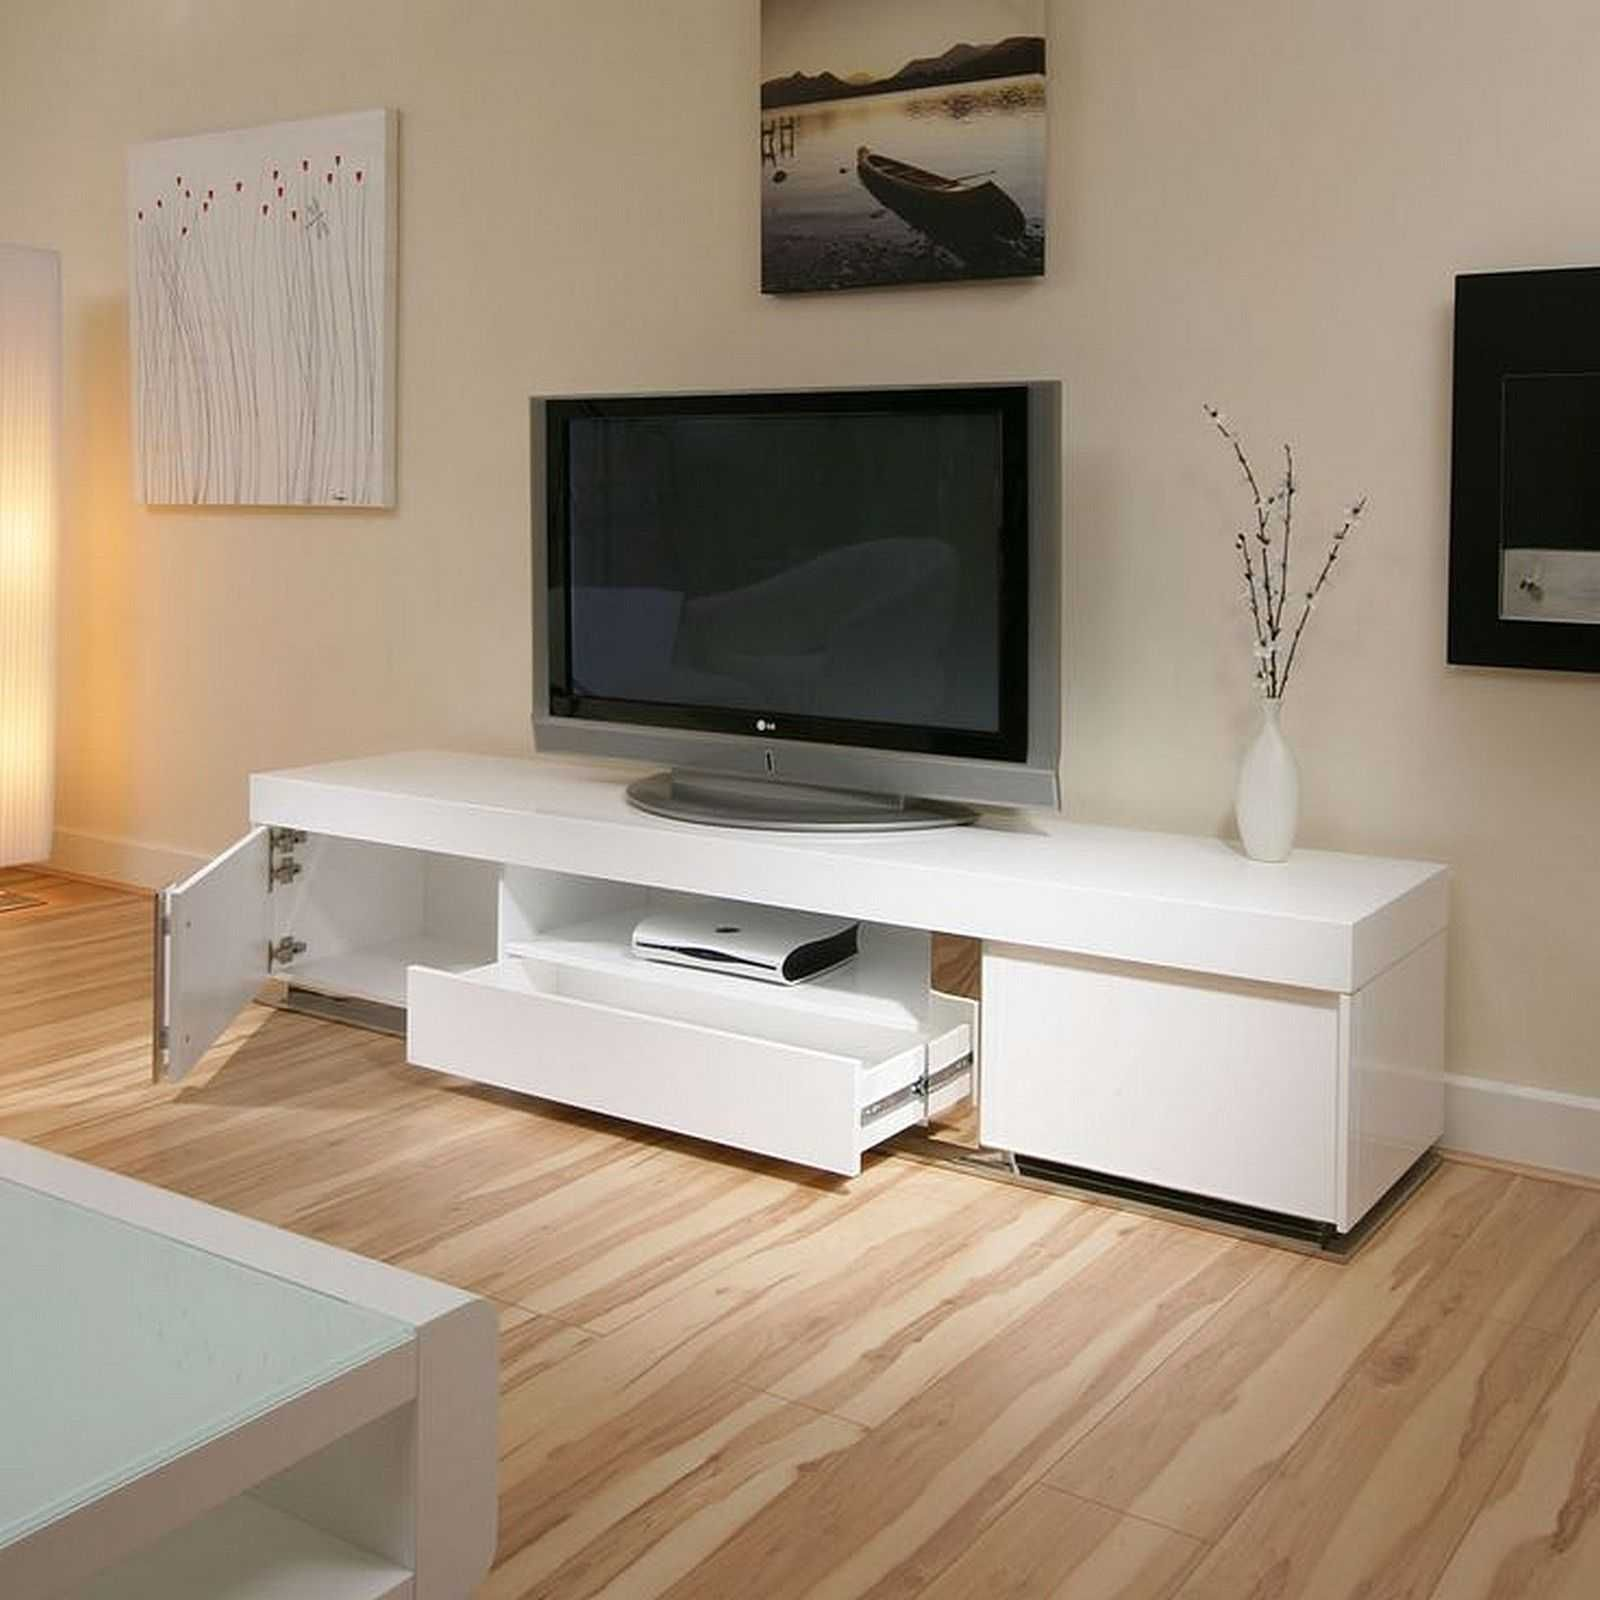 Meuble Tv Minimaliste Meuble Tv Ikea Besta Decoracion Stand With Doors Imagenes Meuble